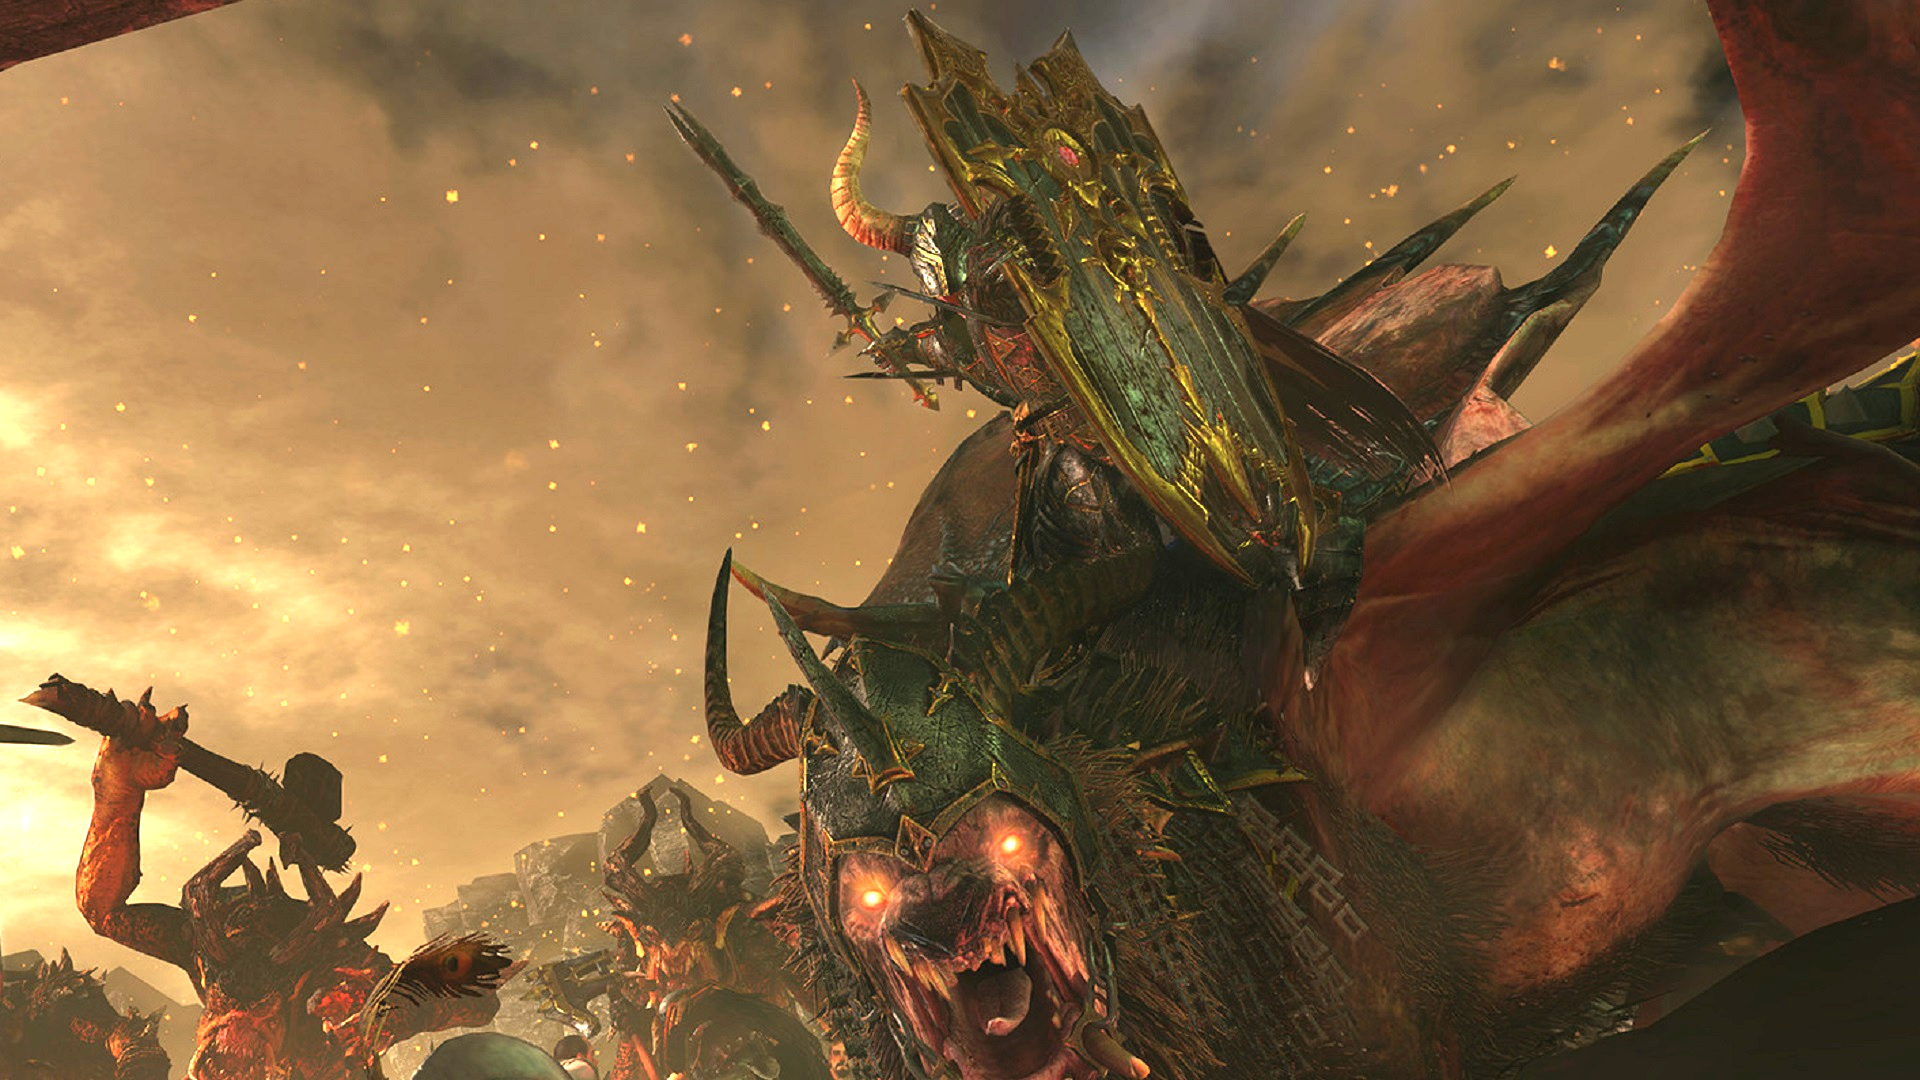 This Total Warhammer 2 modder has turned Archaon's frown upside down